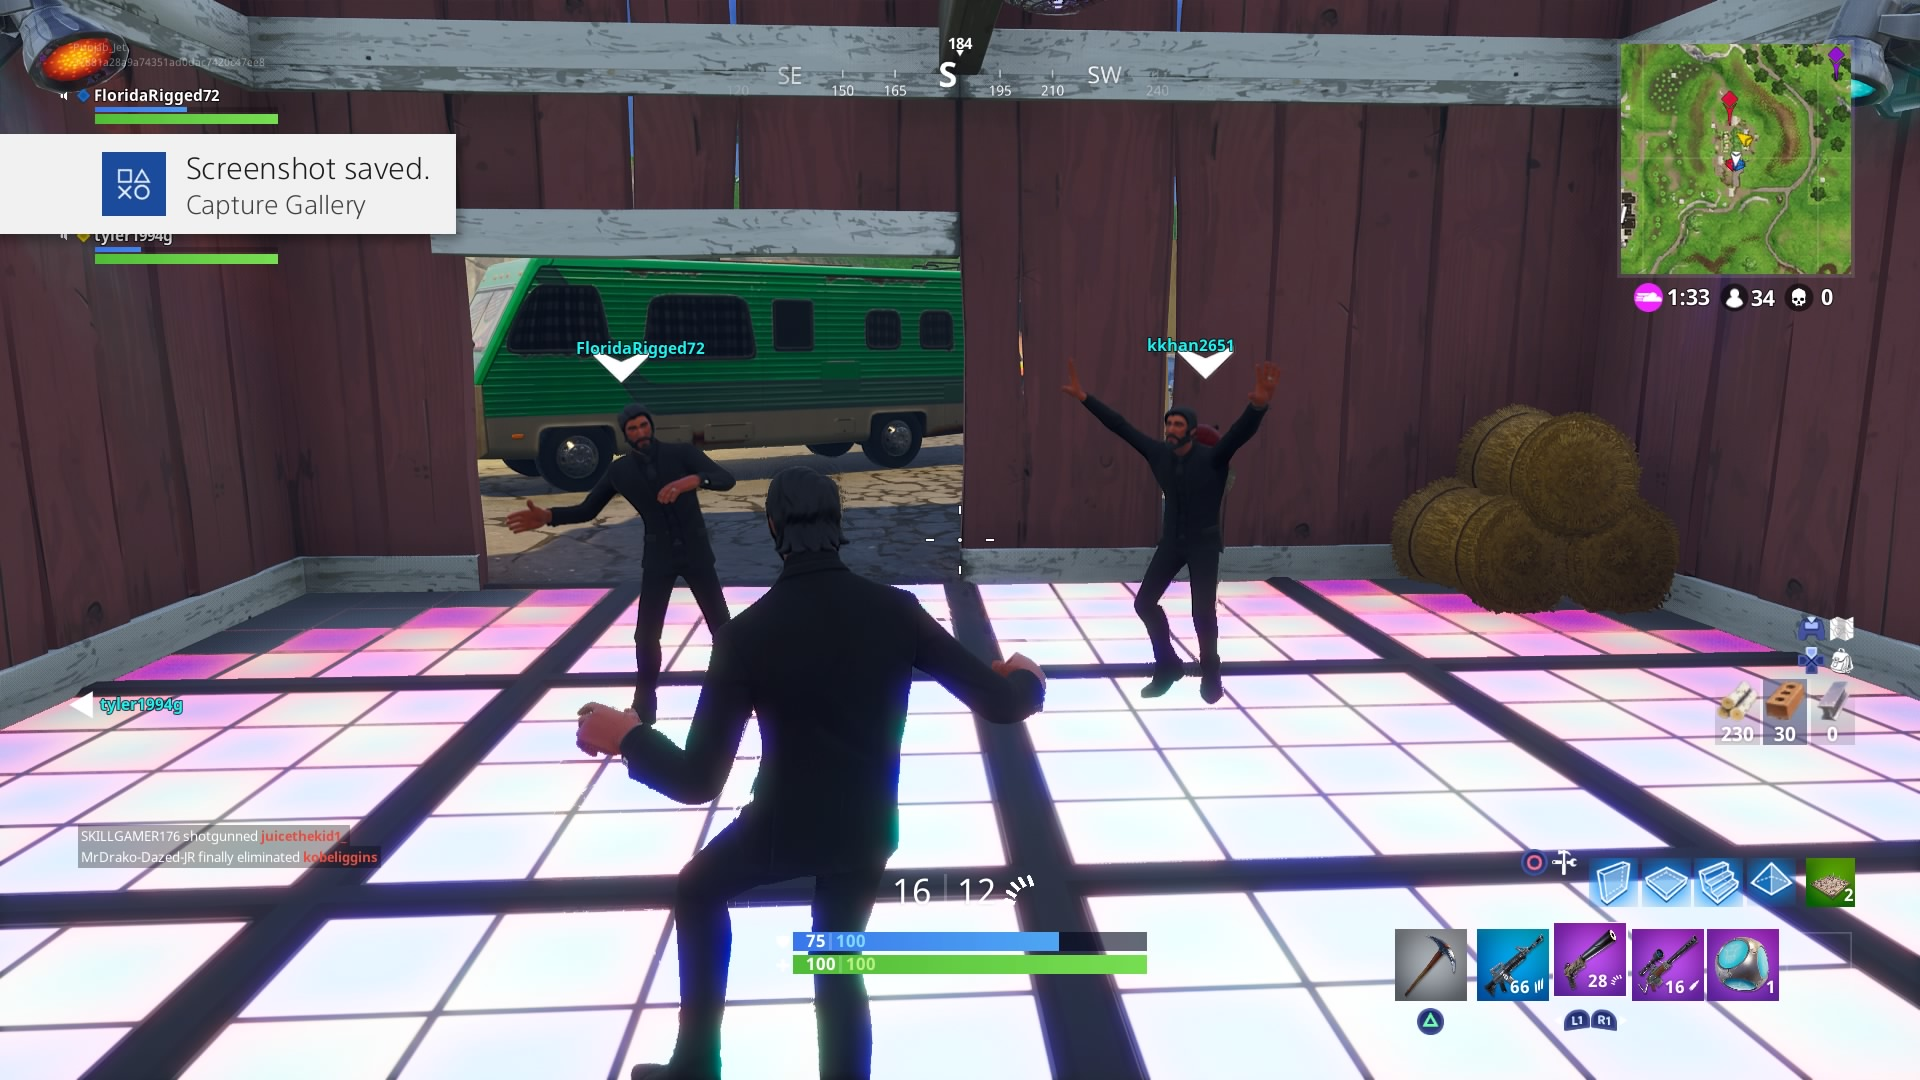 fortnite squad john wick dance computer wallpaper 808